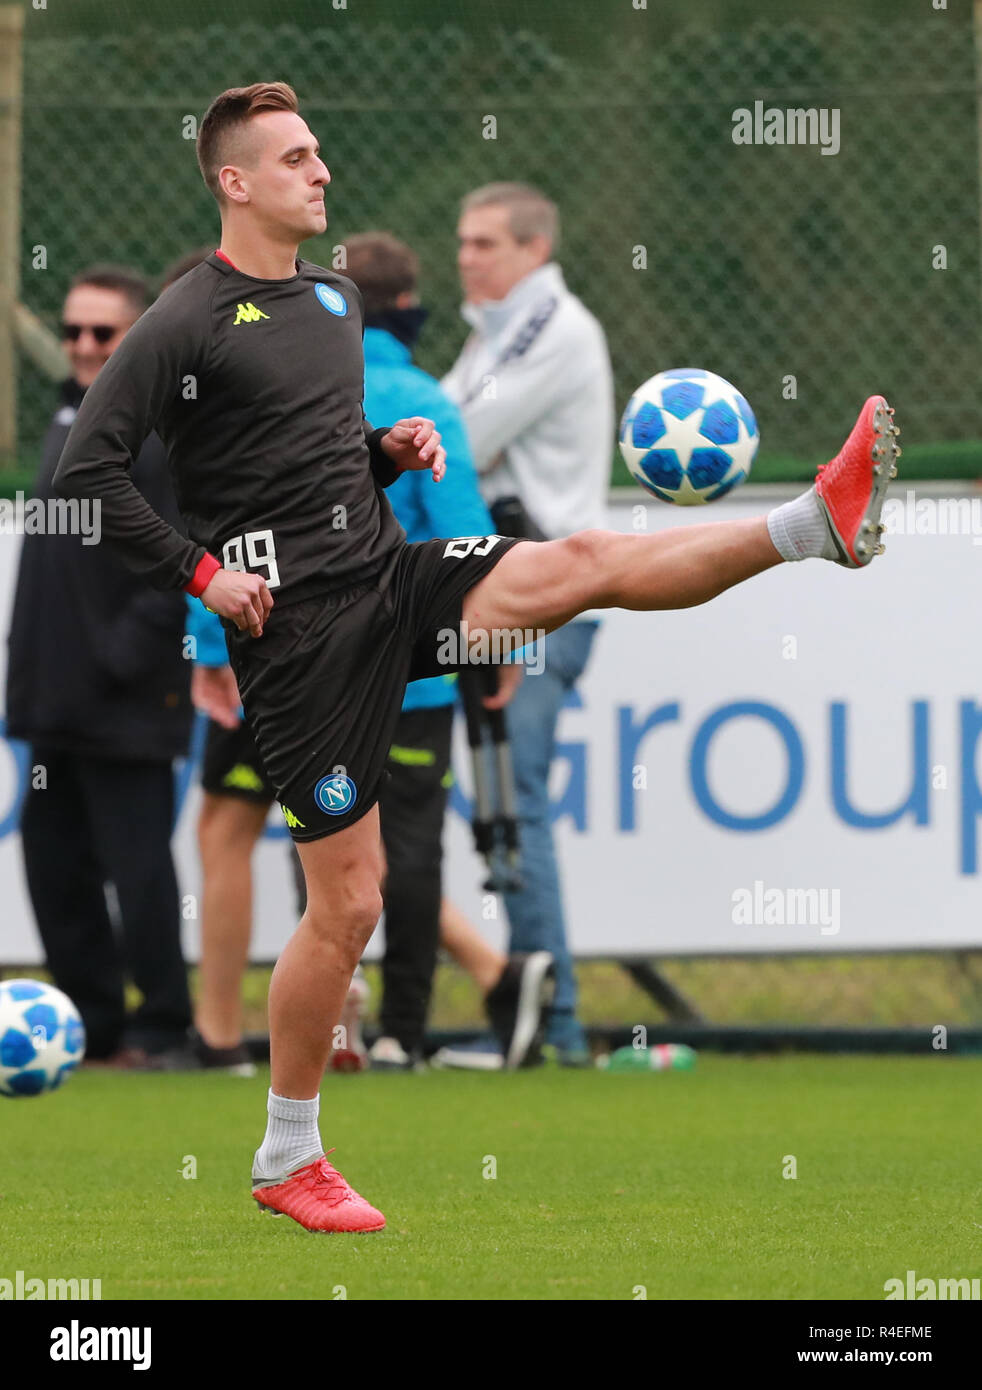 Napoli, Italy. 27th November 2018, Castelvolturno center sporting SSC Napoli,  Italy; session training before the UEFA Champions League game between Napoli  and Red Star Belgrade; Arkadiusz Milik Napoli Credit: Action Plus Sports